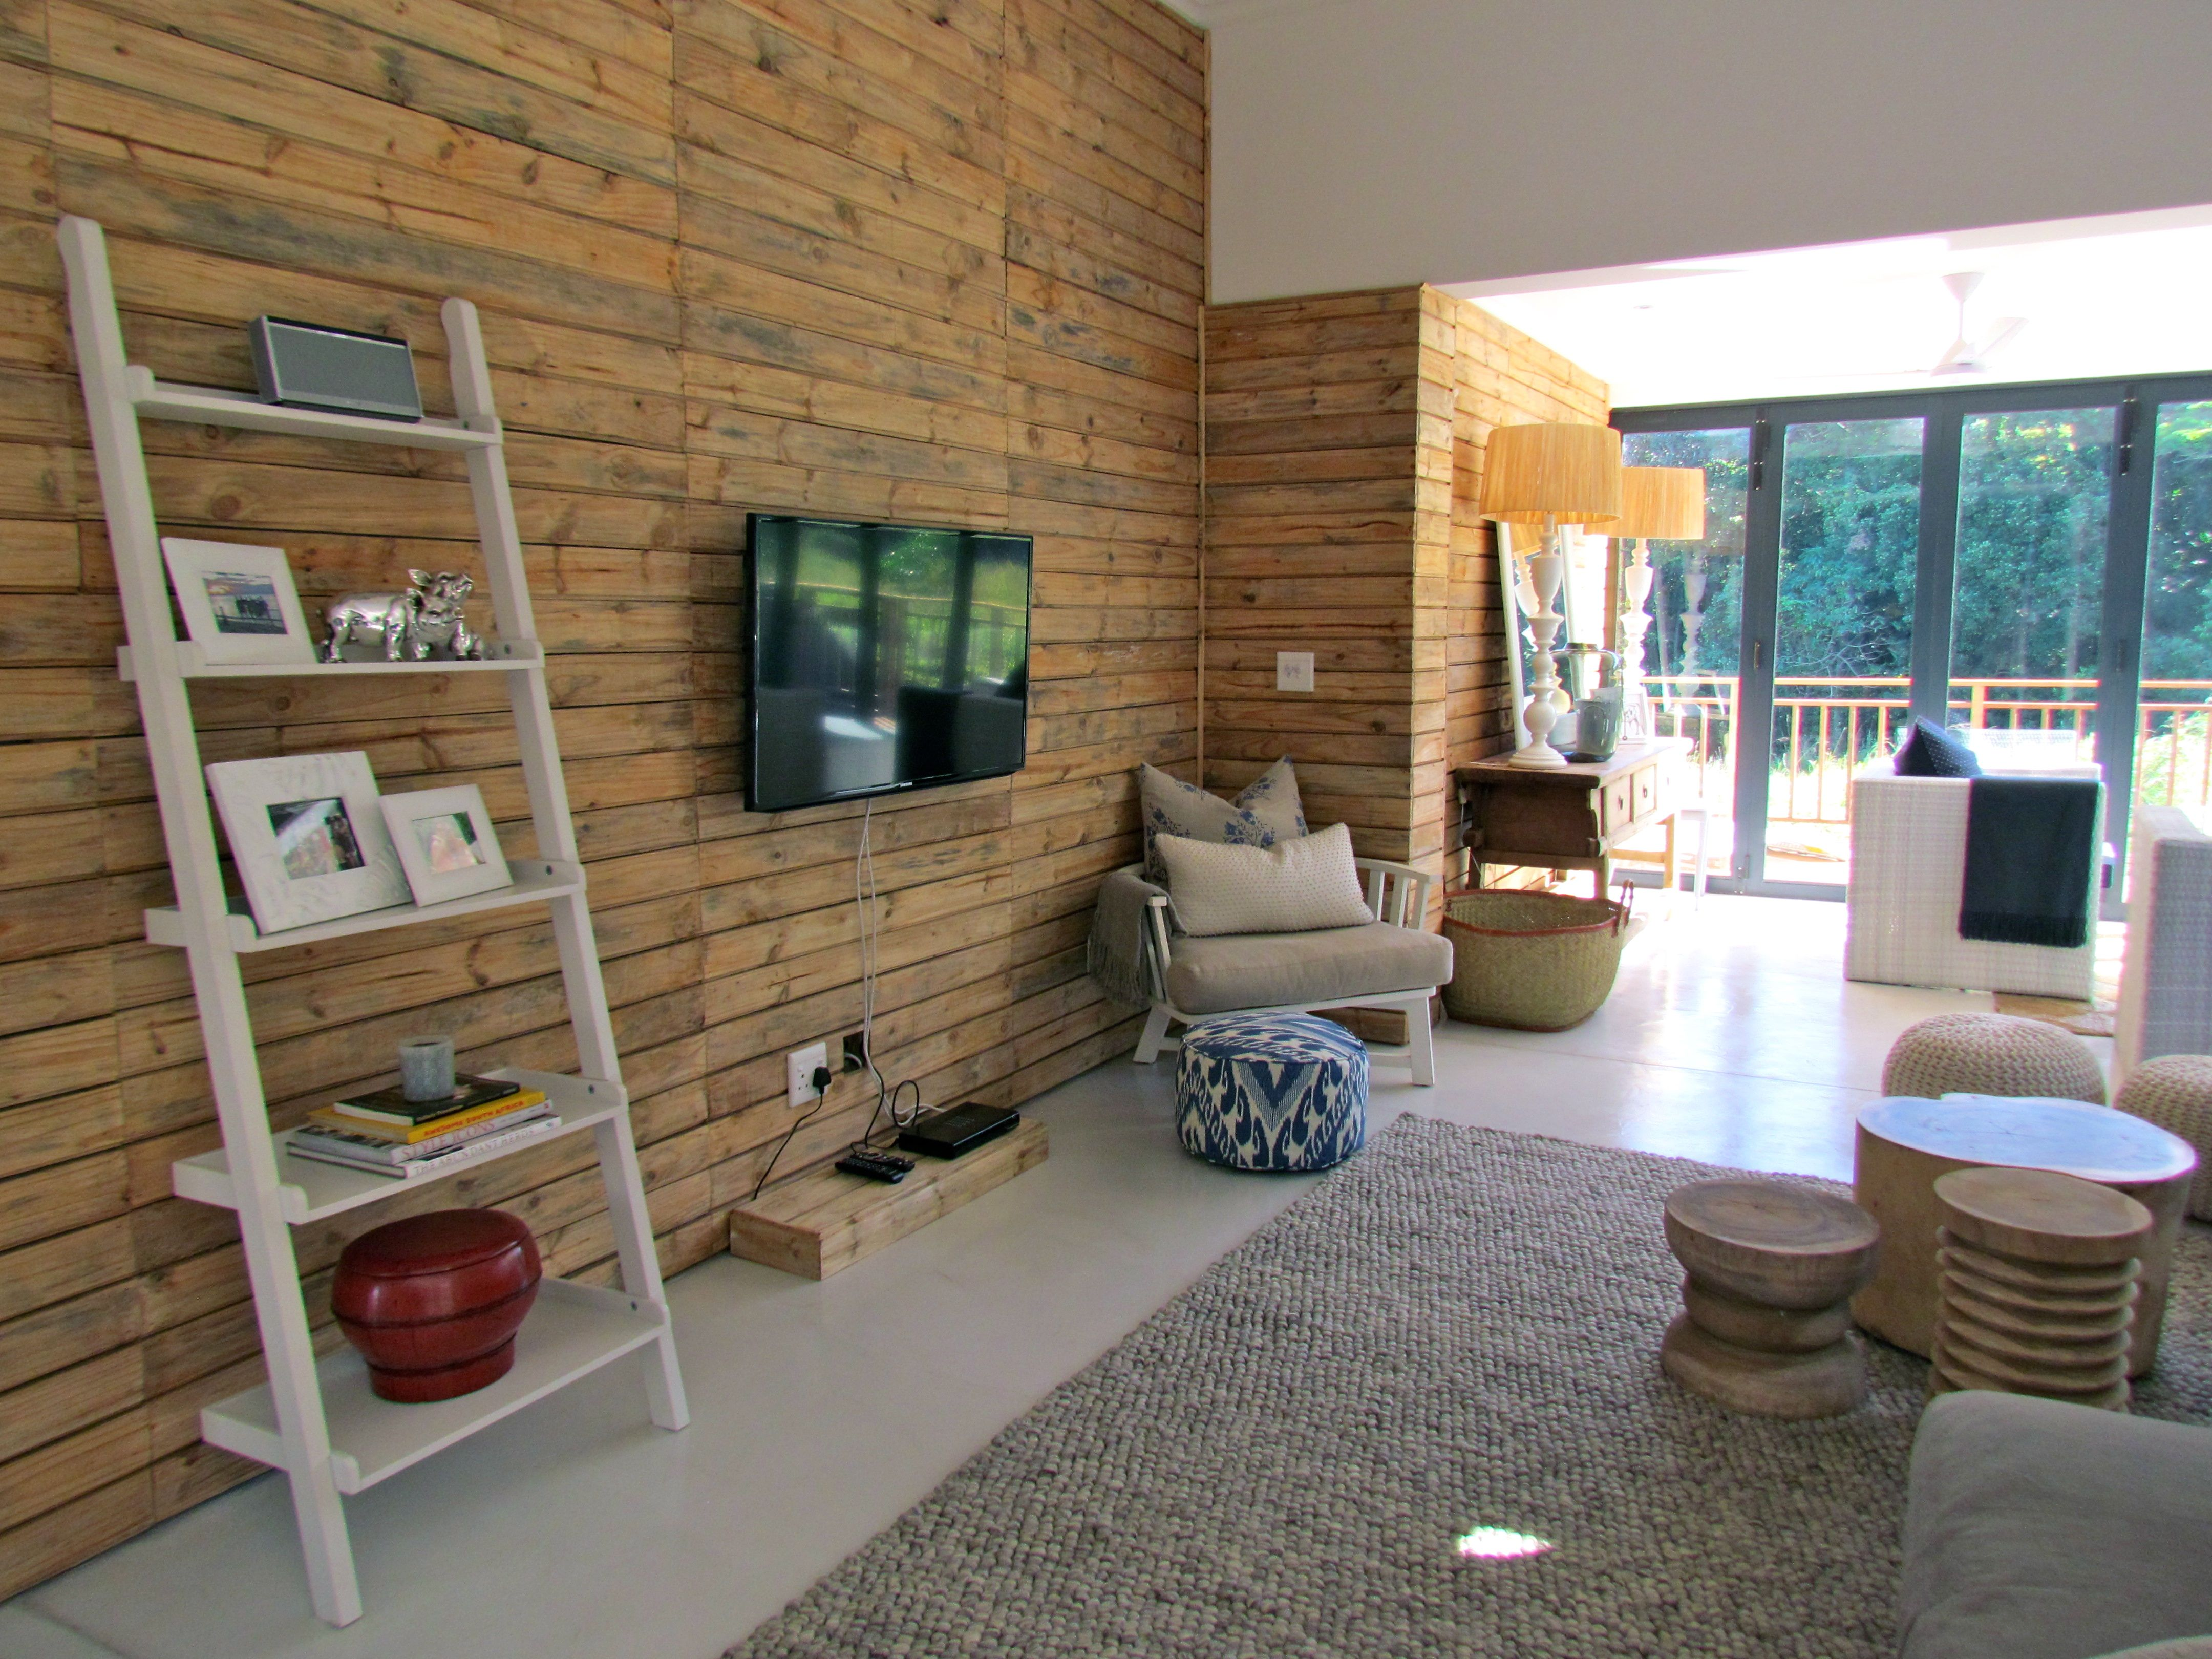 My Timber Clad Wall Using Old Wooden Pallets Adds Warmth And